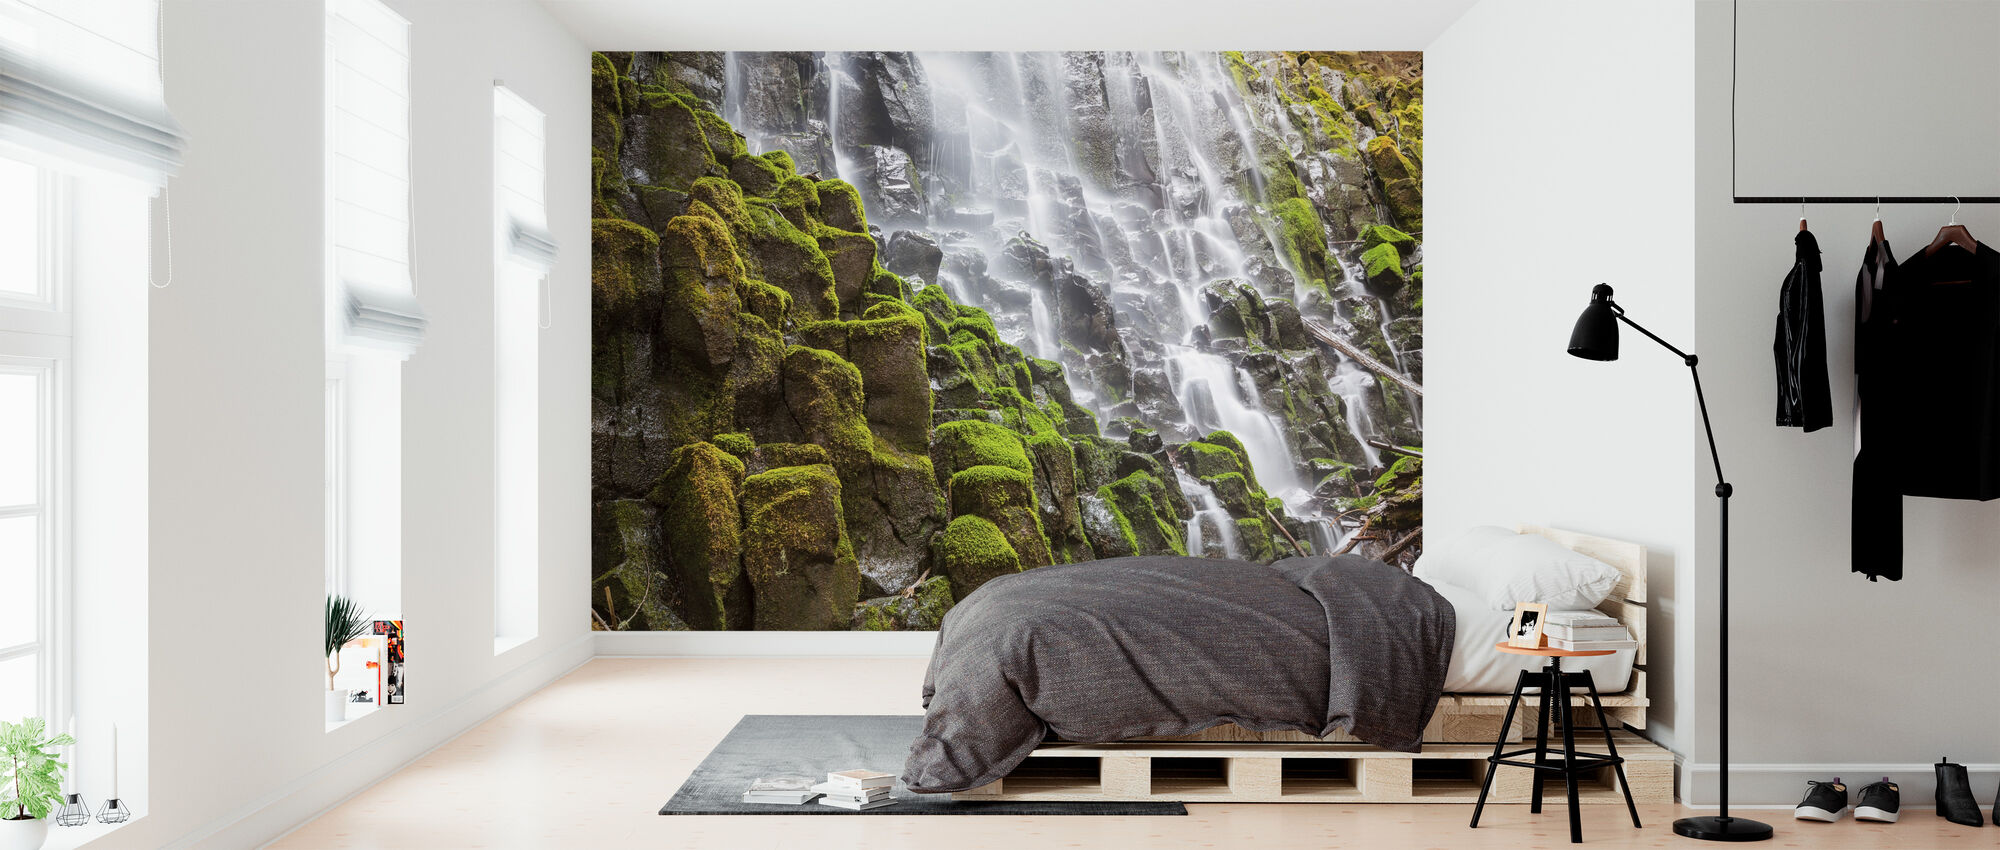 Waterfall and Moss - Wallpaper - Bedroom